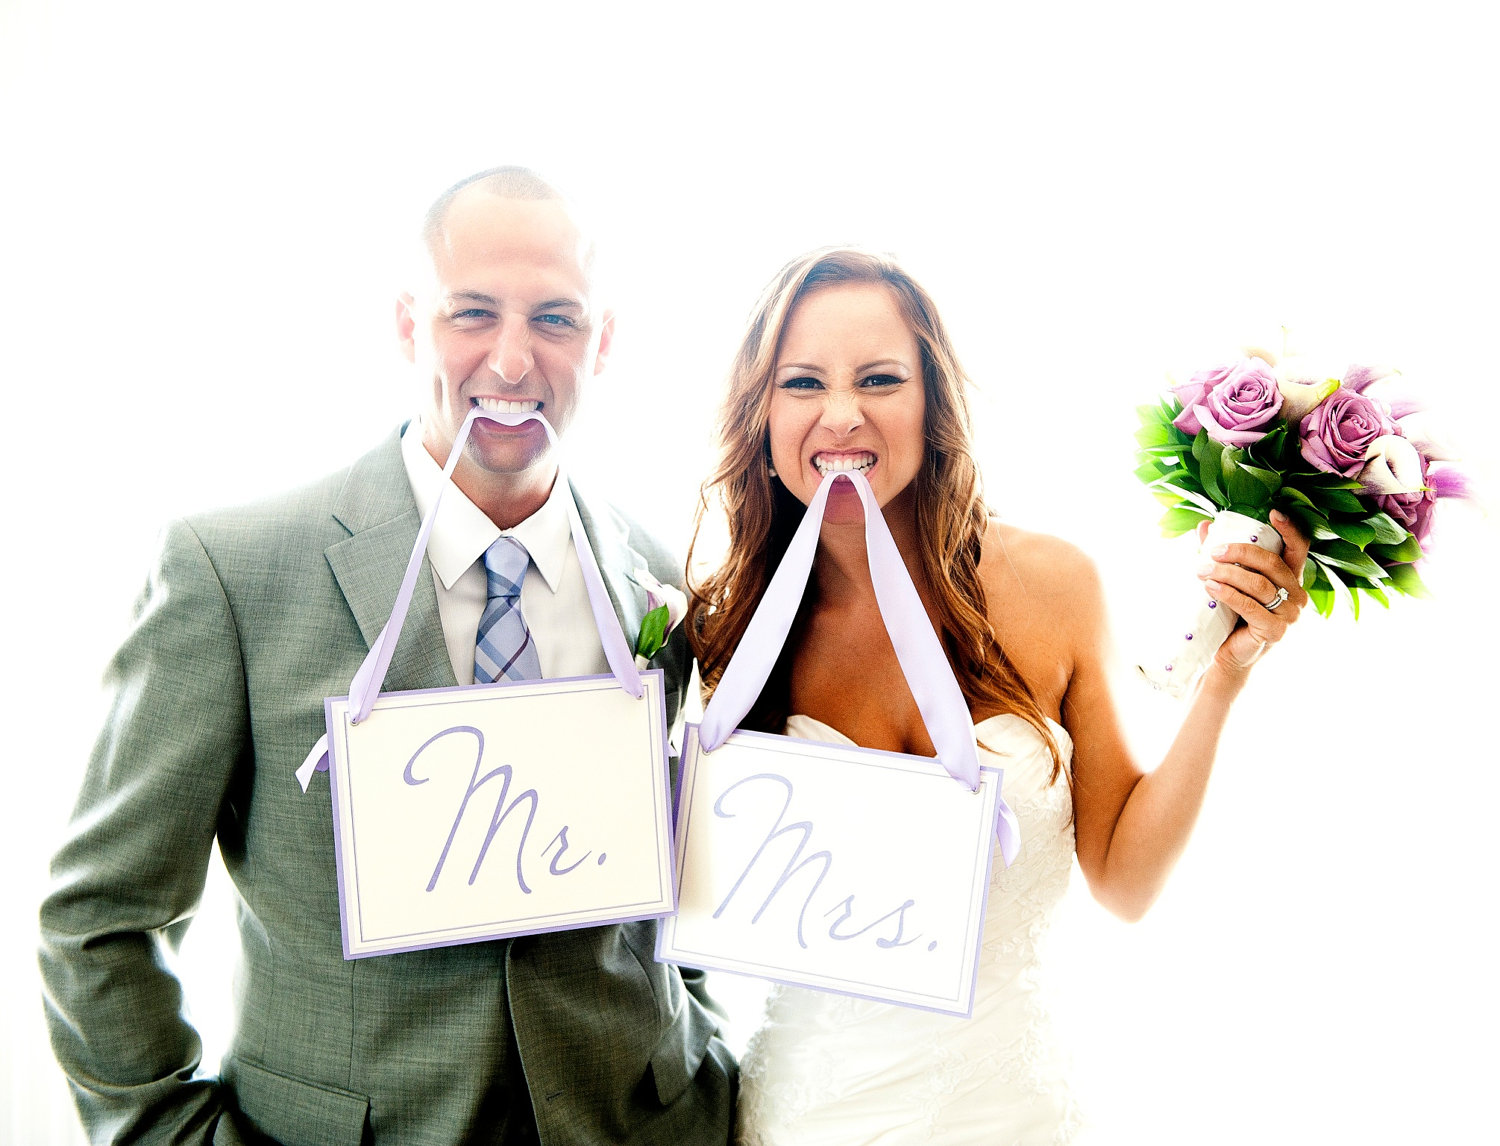 Creative-wedding-ideas-from-etsy-mr-and-mrs-decor-diy-printable-signs.original